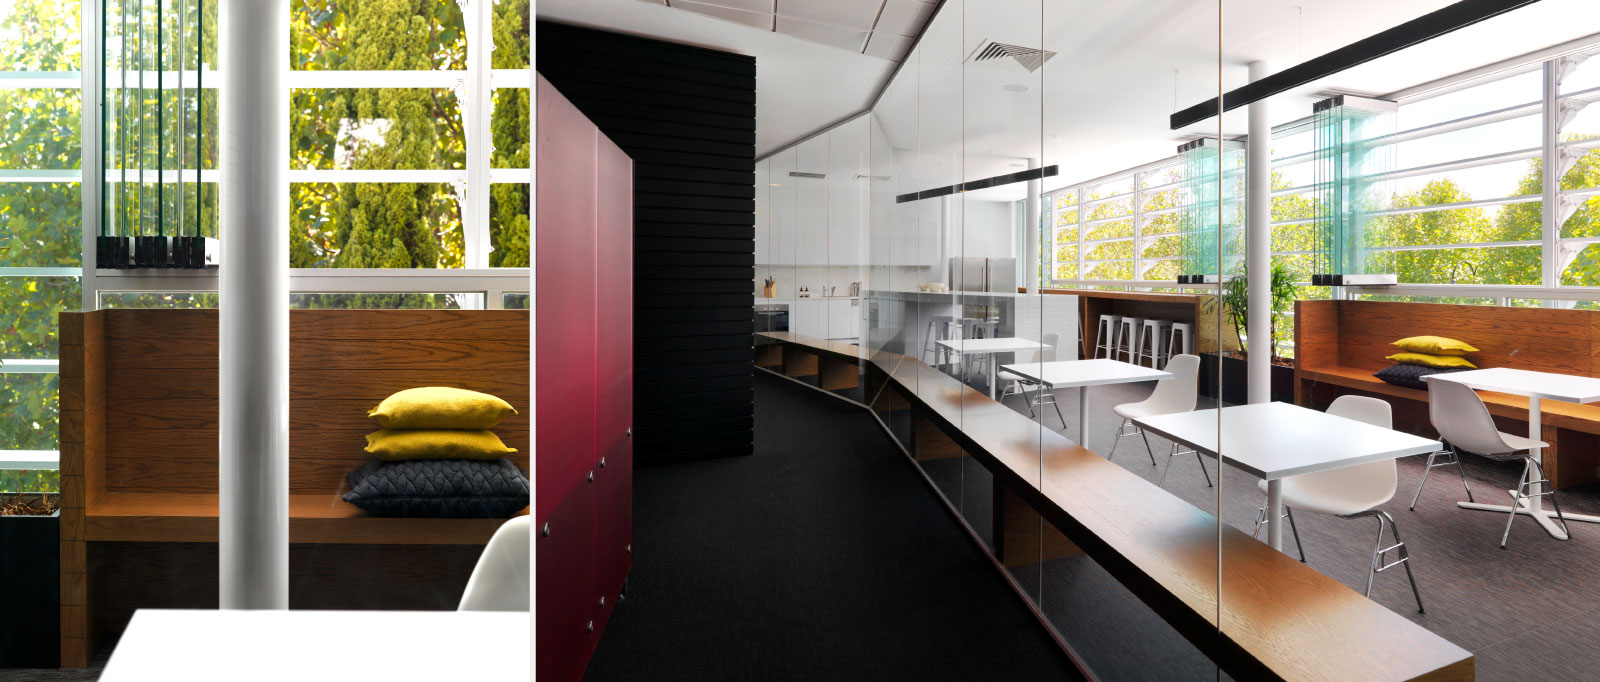 H2o-Architects-Melbourne-Kane-Constructions-Melbourne-Office-06